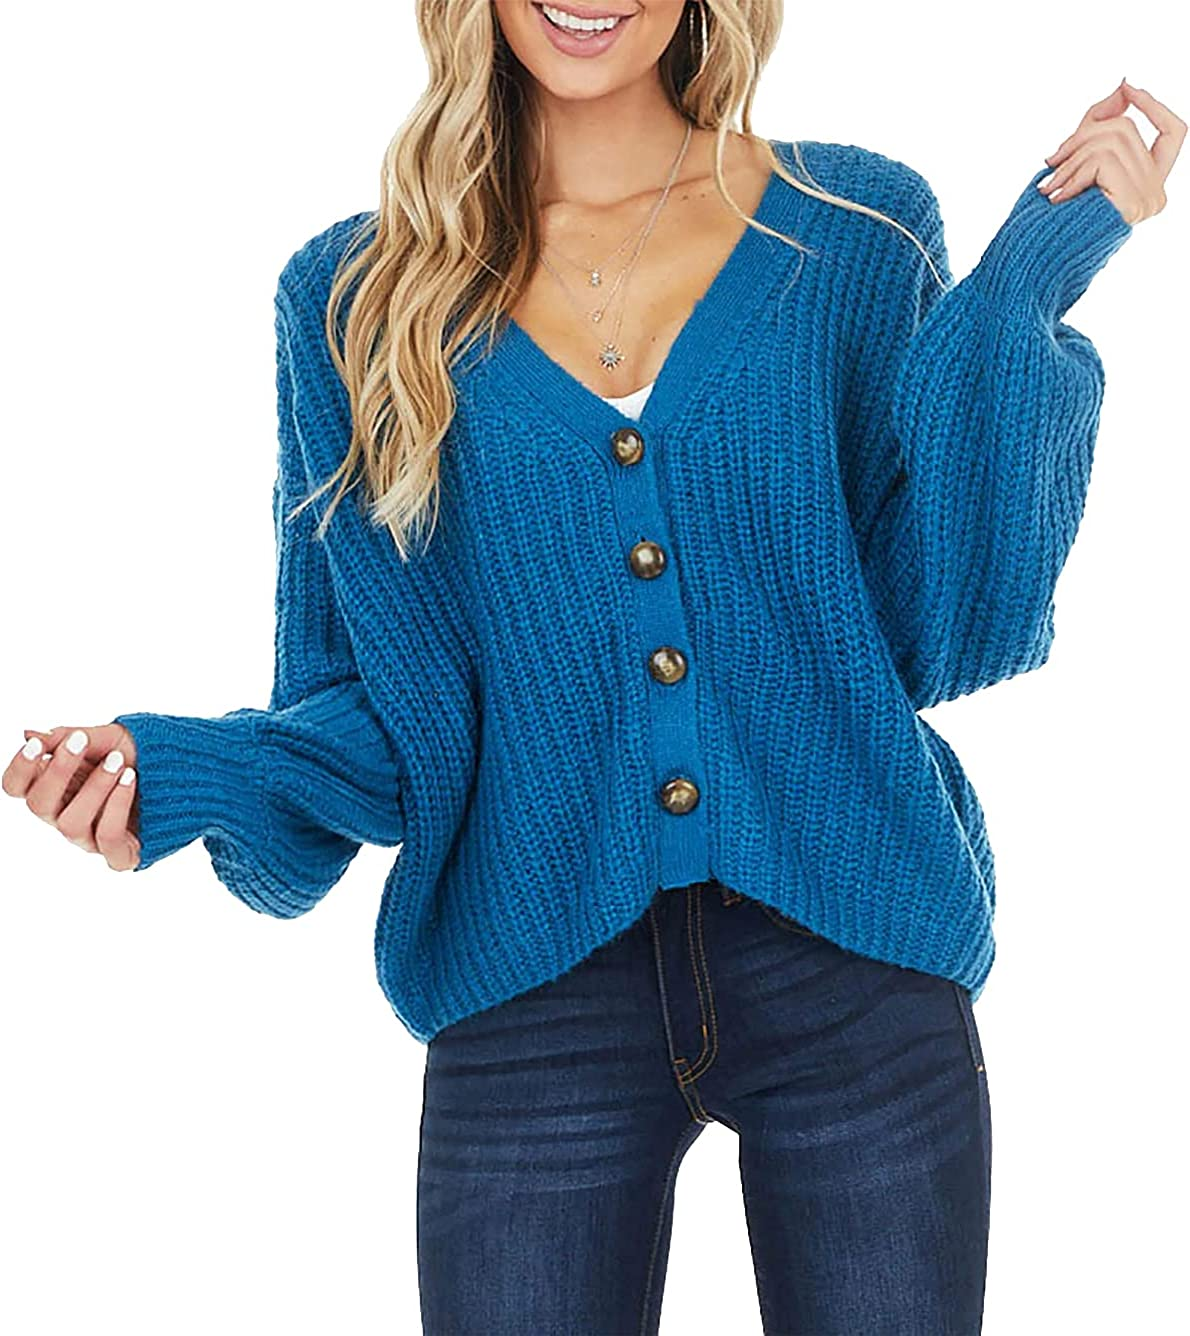 LAMISSCHE Womens Long Sleeve Button Down Cardigan Sweater Casual Open Front V Neck Knit Coat Off Shoulder Baggy Crop Top